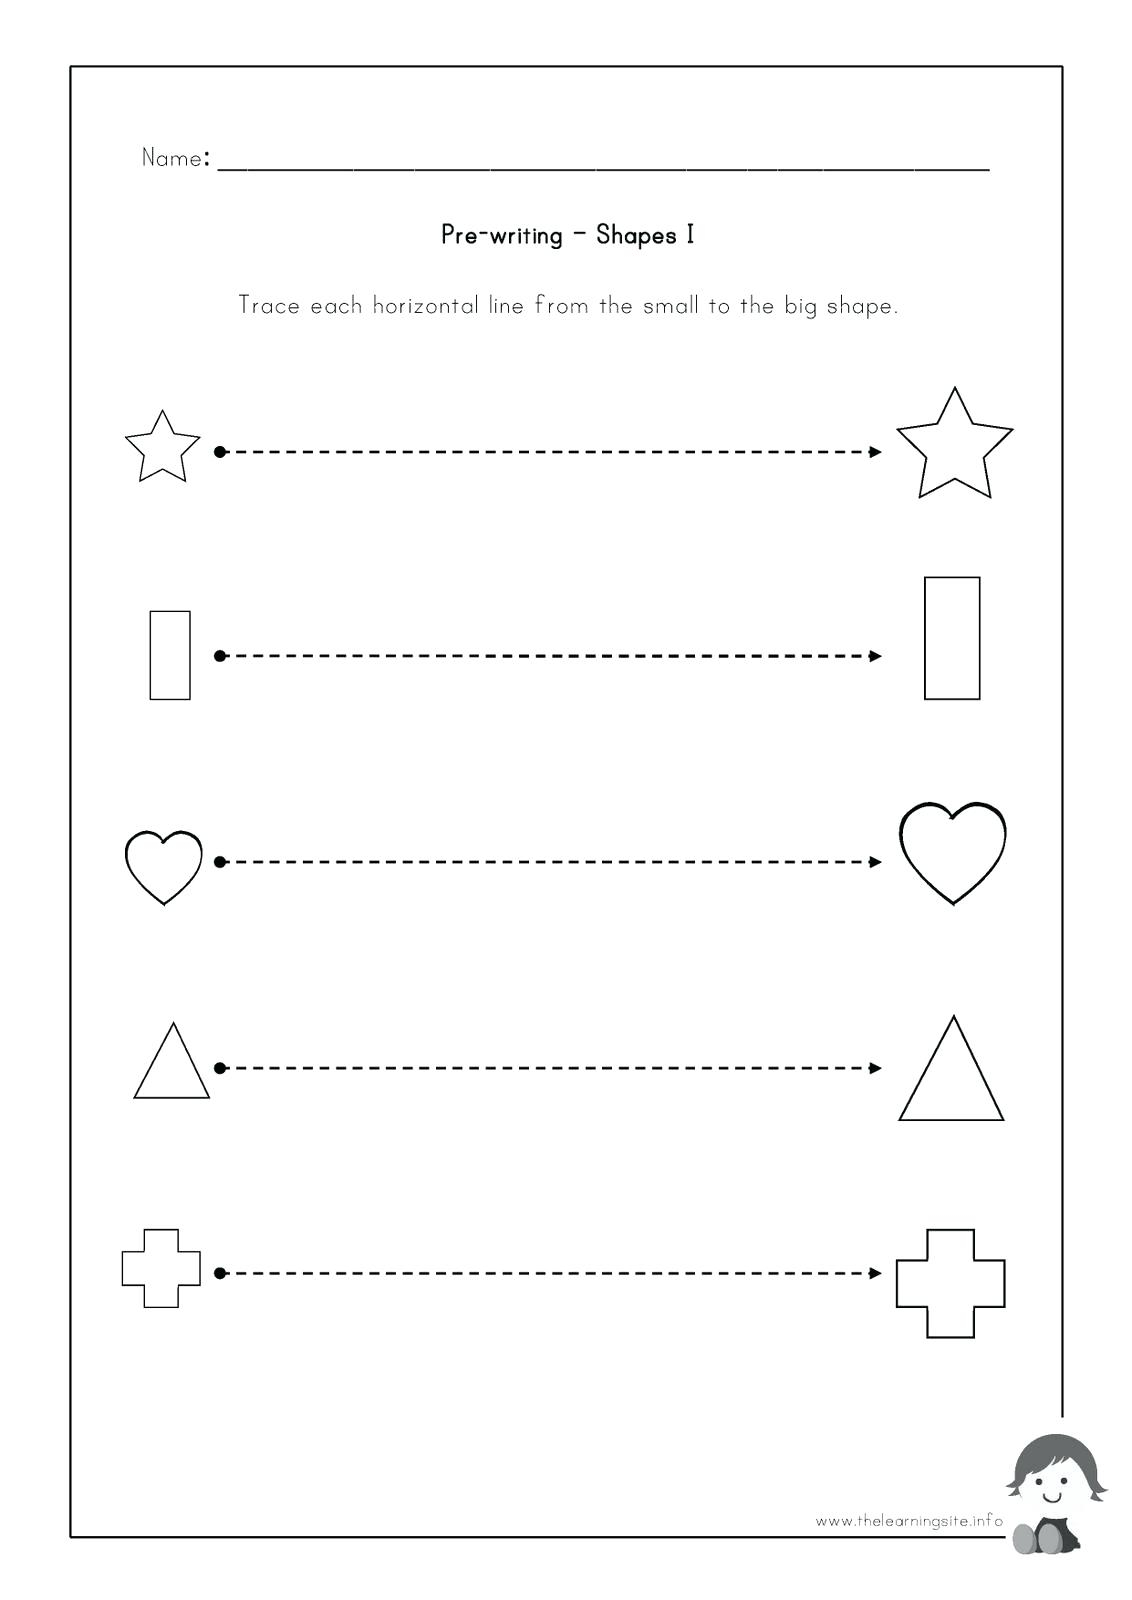 3 Year Old Worksheets | Printable Worksheets And Activities